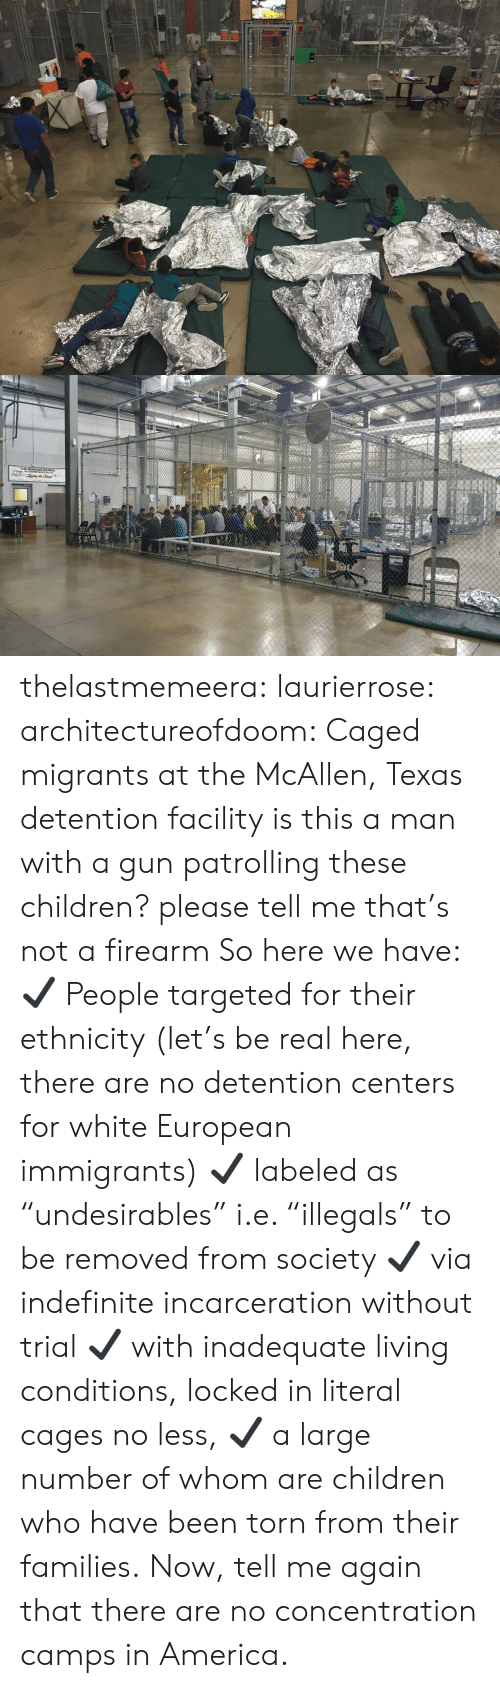 """concentration camps: thelastmemeera: laurierrose:  architectureofdoom:  Caged migrants at the McAllen, Texas detention facility    is this a man with a gun patrolling these children? please tell me that's not a firearm   So here we have:  ✔  People targeted for their ethnicity (let's be real here, there are no detention centers for white European immigrants)  ✔  labeled as """"undesirables"""" i.e. """"illegals"""" to be removed from society  ✔  via indefinite incarceration without trial  ✔  with inadequate living conditions, locked in literal cages no less,  ✔ a large number of whom are children who have been torn from their families. Now, tell me again that there are no concentration camps in America."""